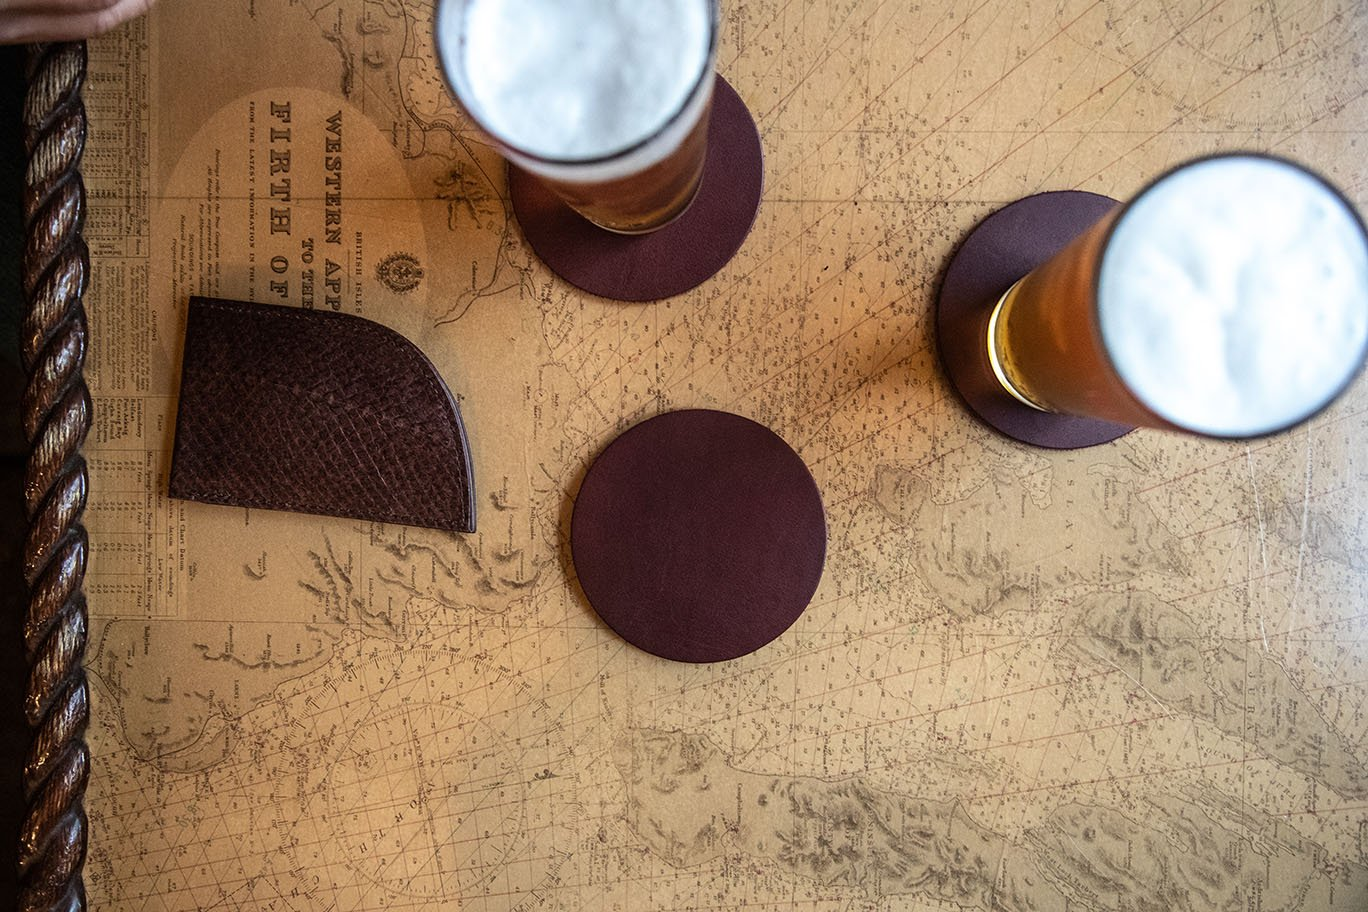 Sebago Camp Coasters